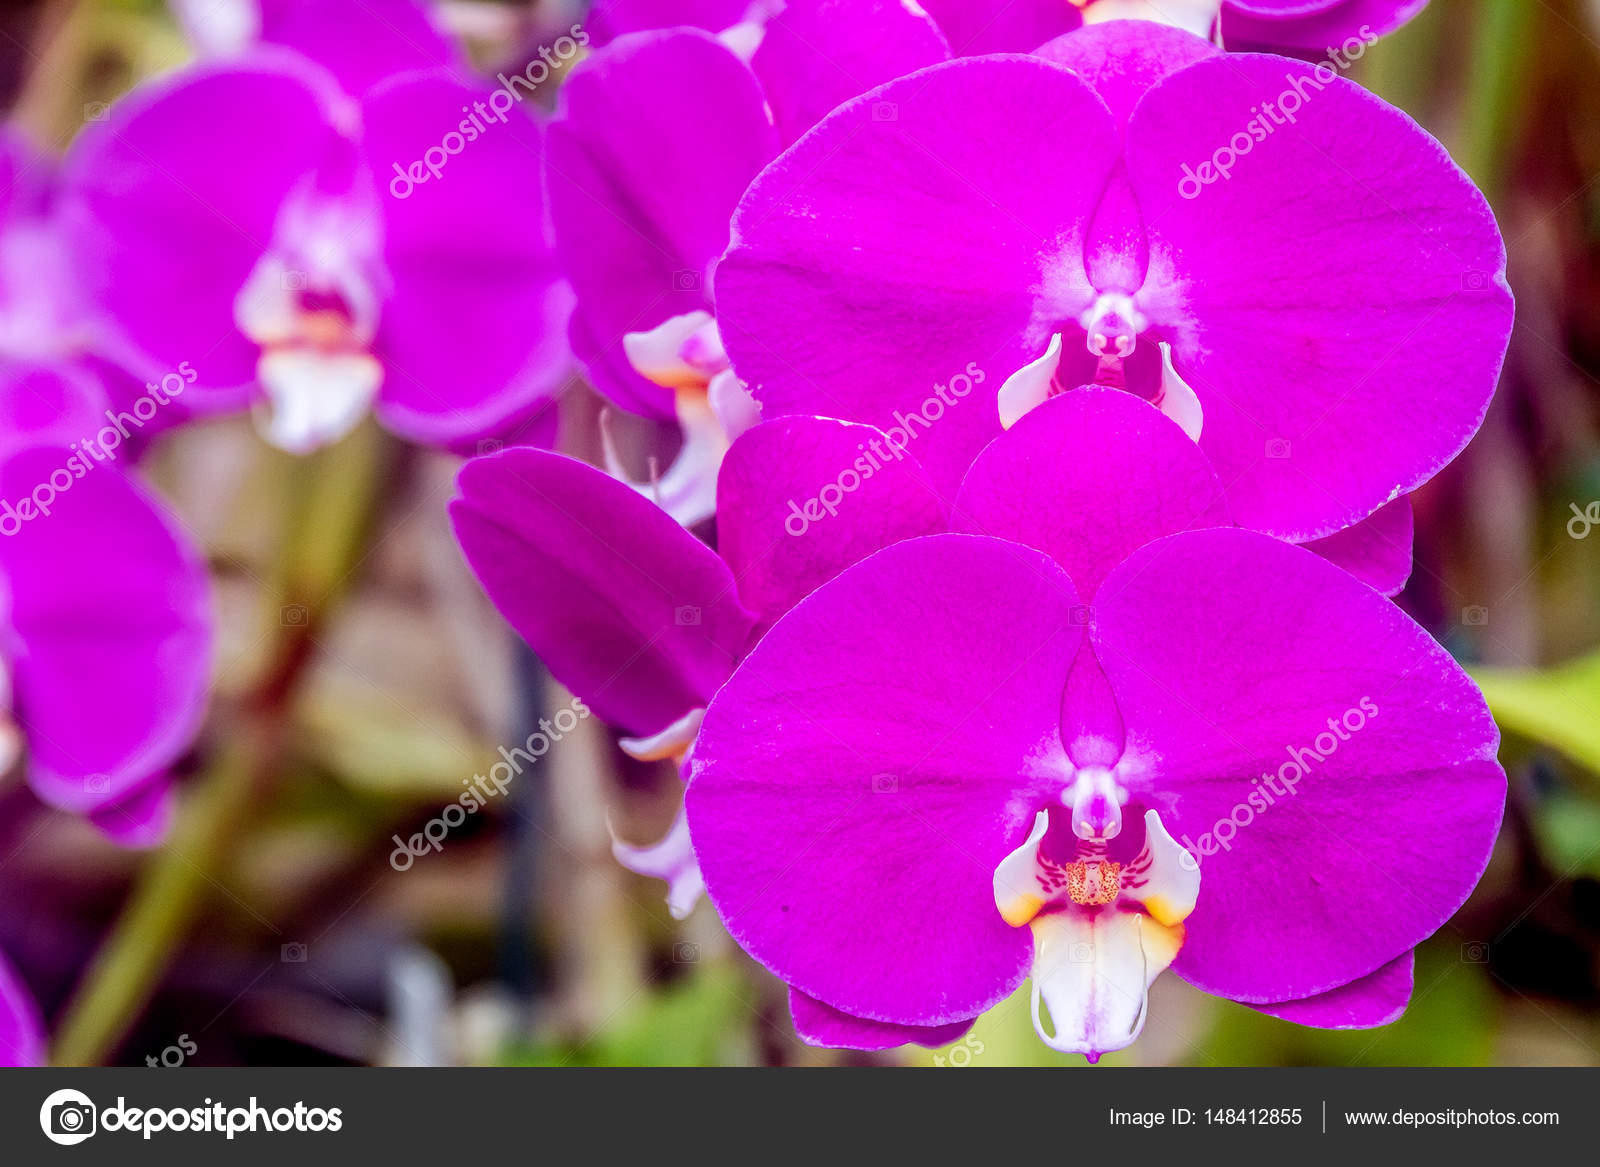 Beautiful orchid flowers stock photo volare2004 148412855 beautiful orchid flowers on natural background photo by volare2004 izmirmasajfo